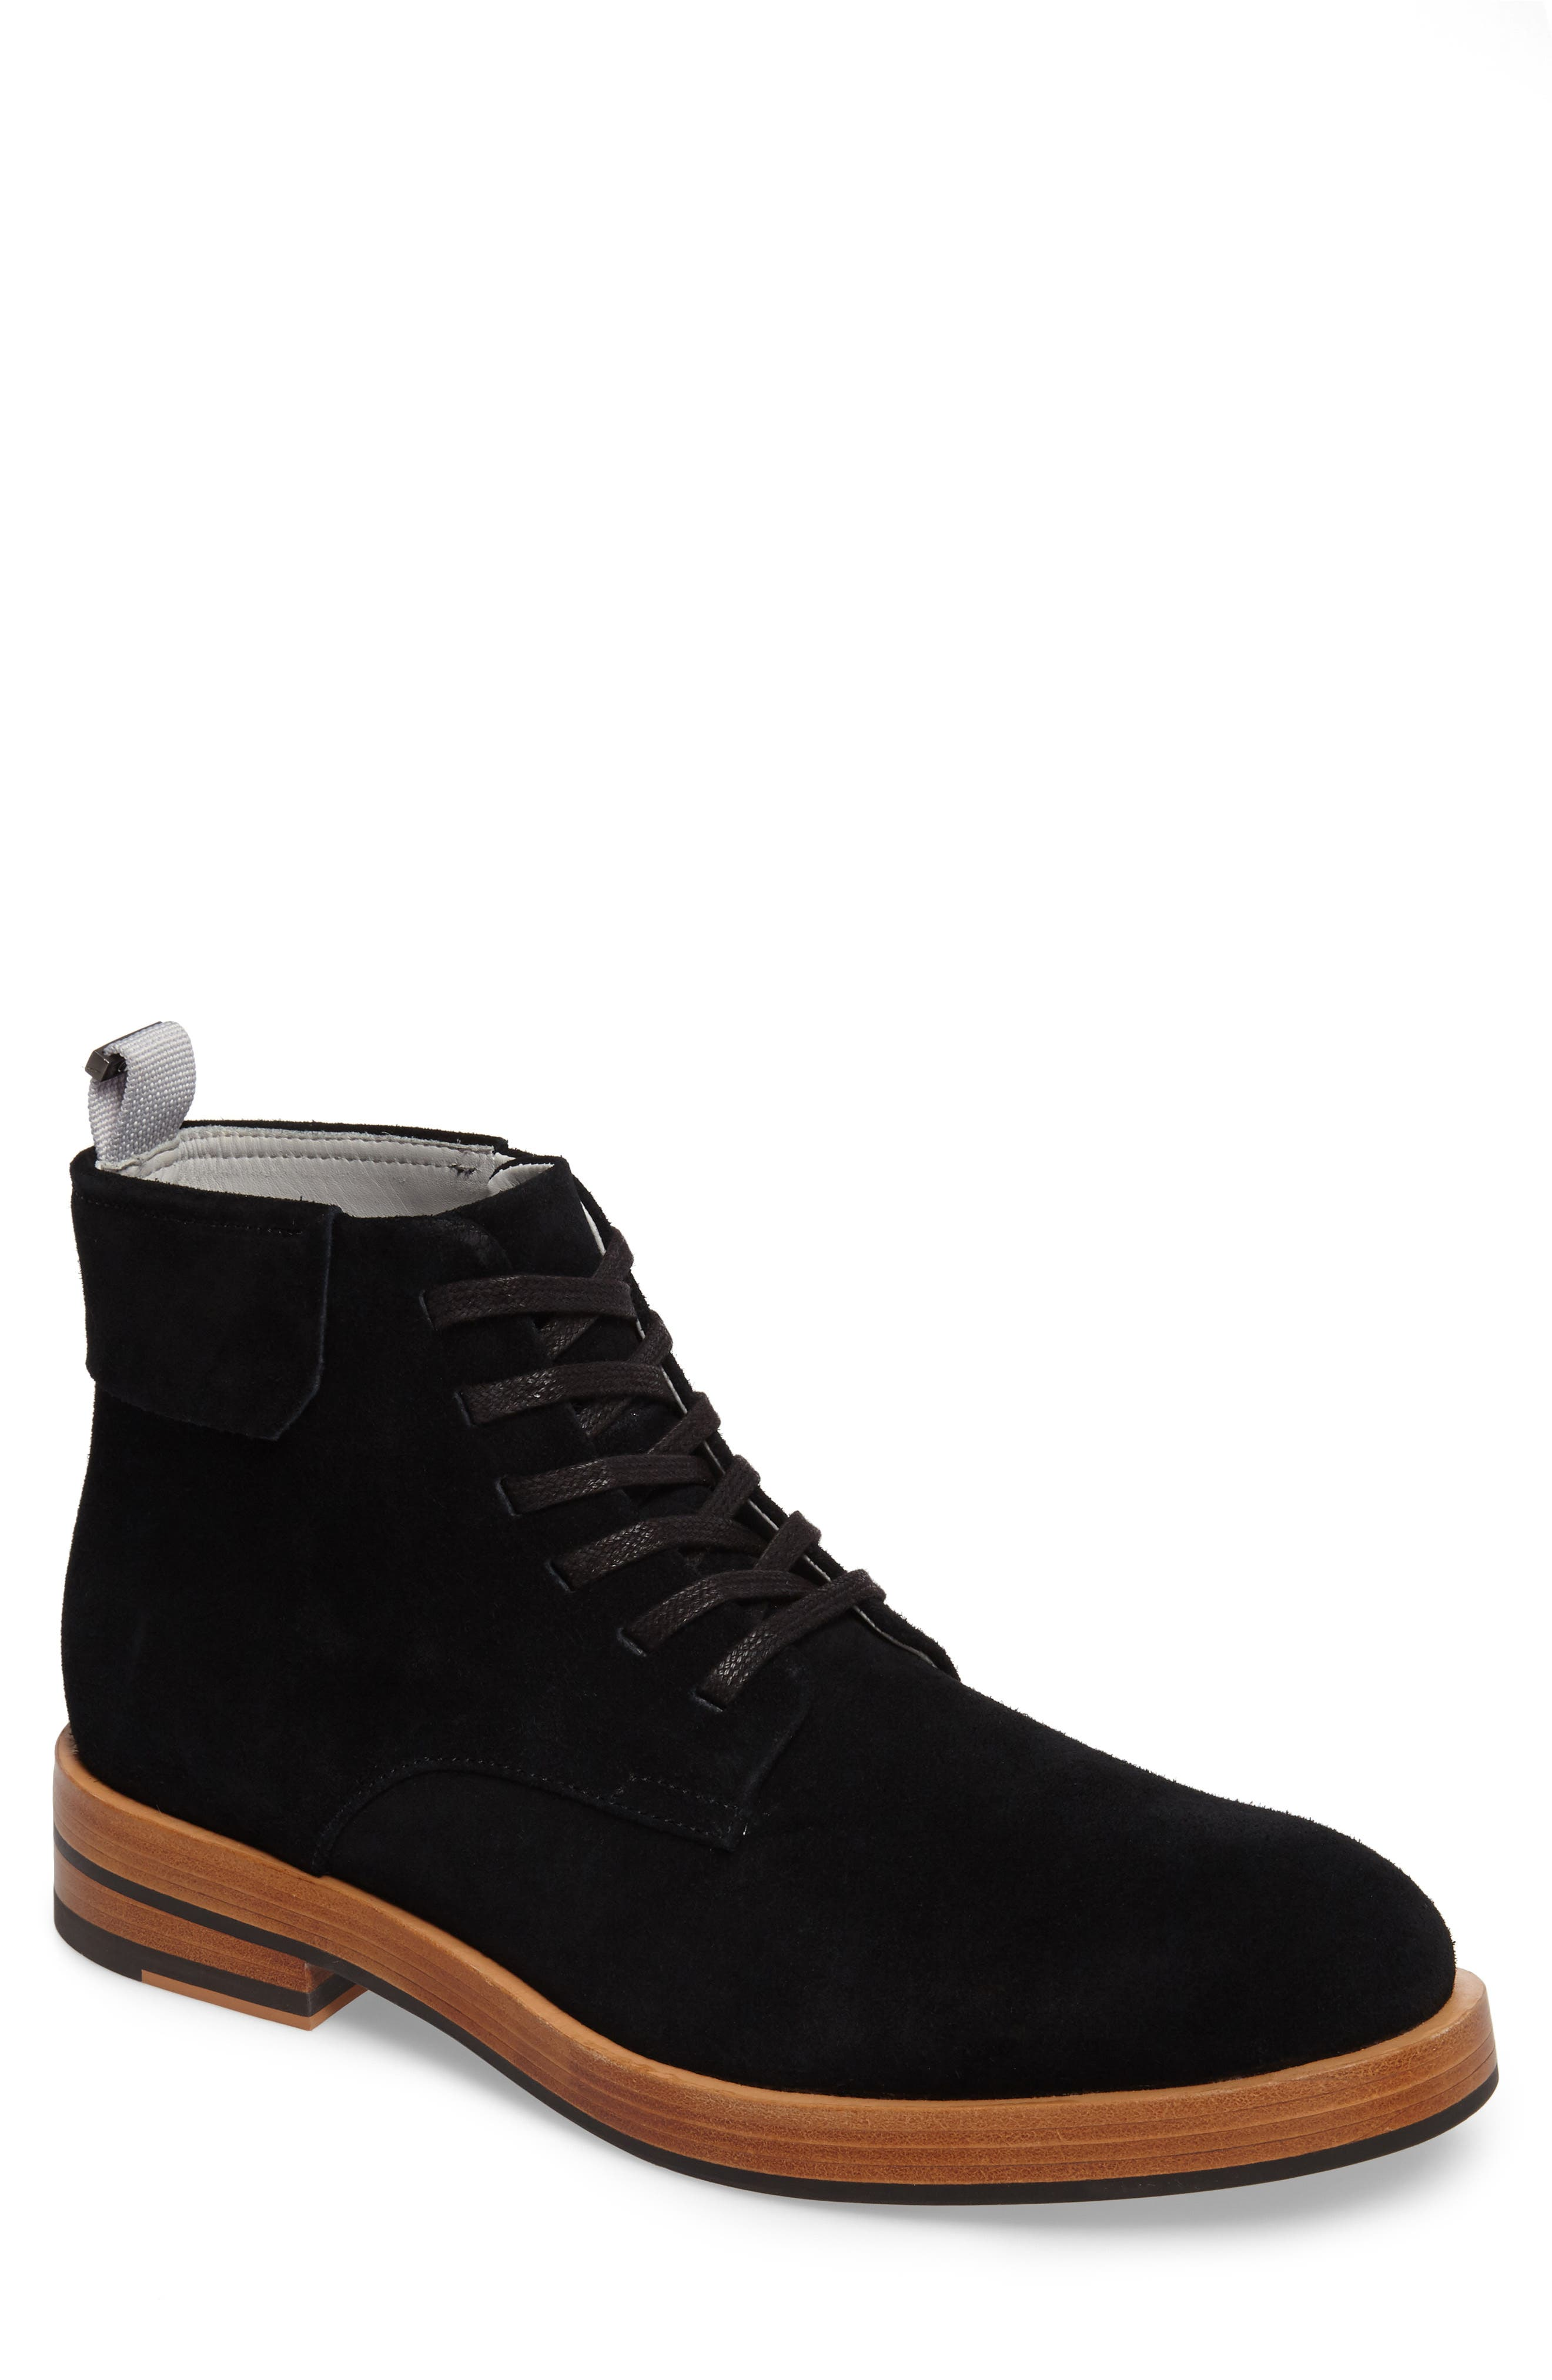 Main Image - Calvin Klein Radburn Plain Toe Boot (Men)